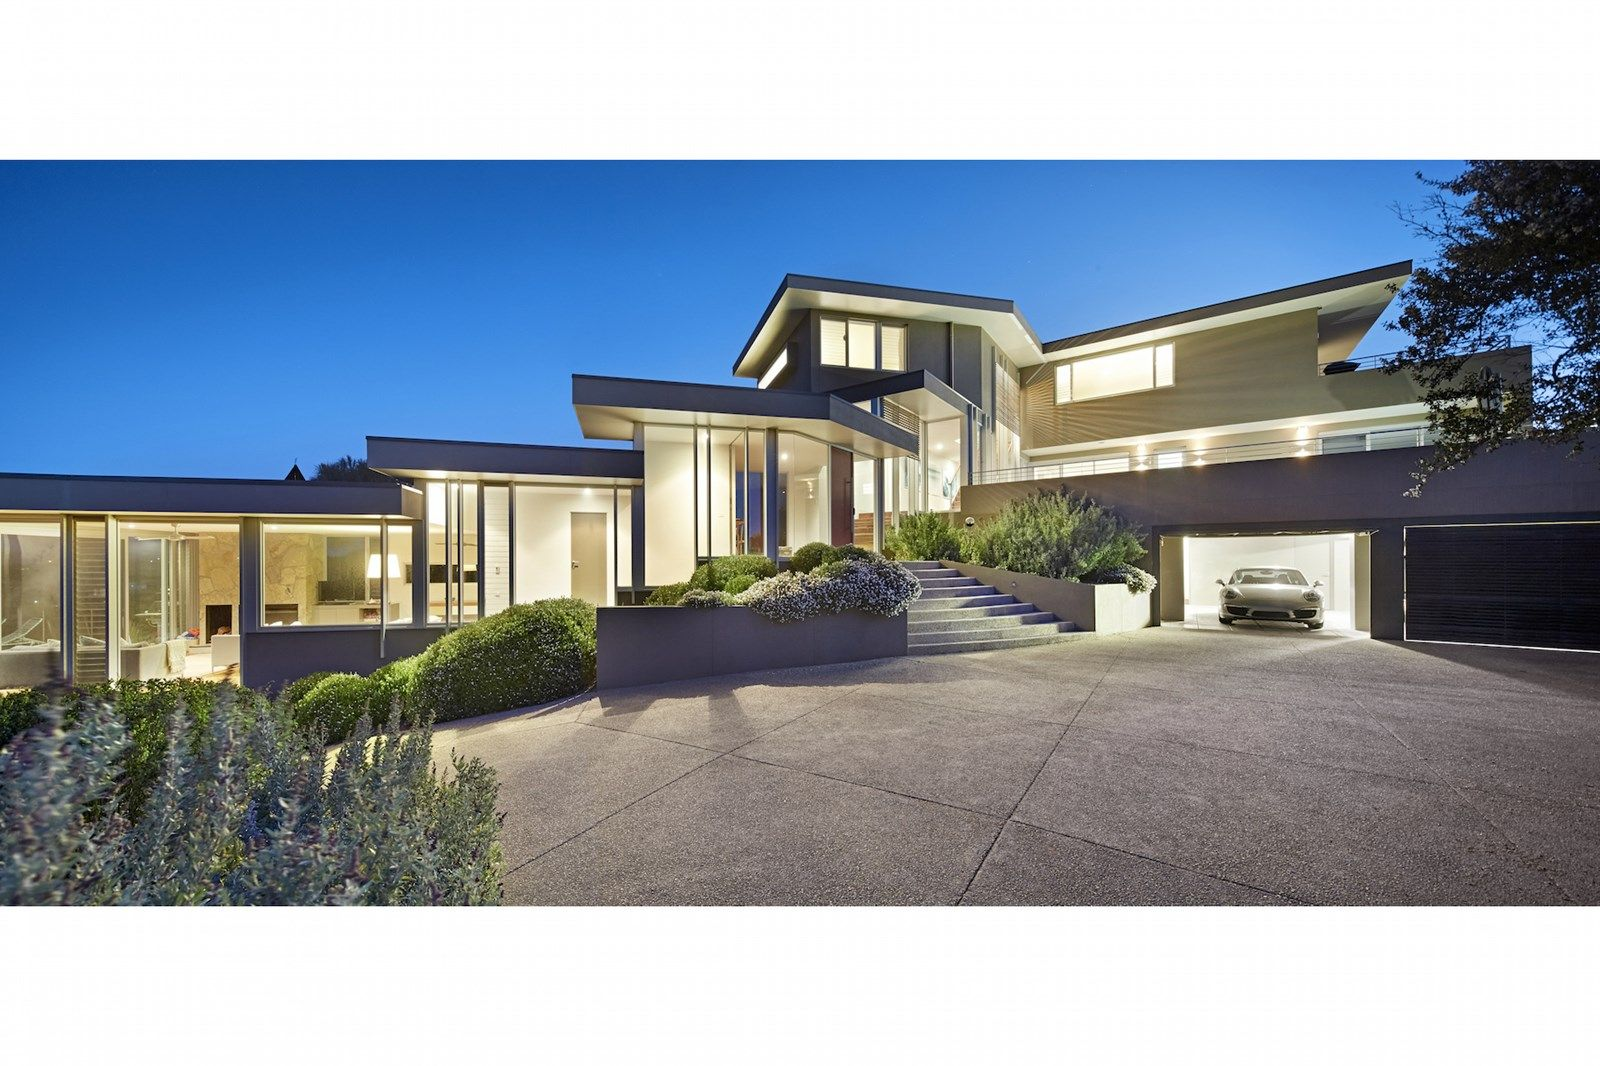 Outstanding 5 Bedroom House For Sale At 44 Knox Road Blairgowrie Vic Home Interior And Landscaping Ponolsignezvosmurscom